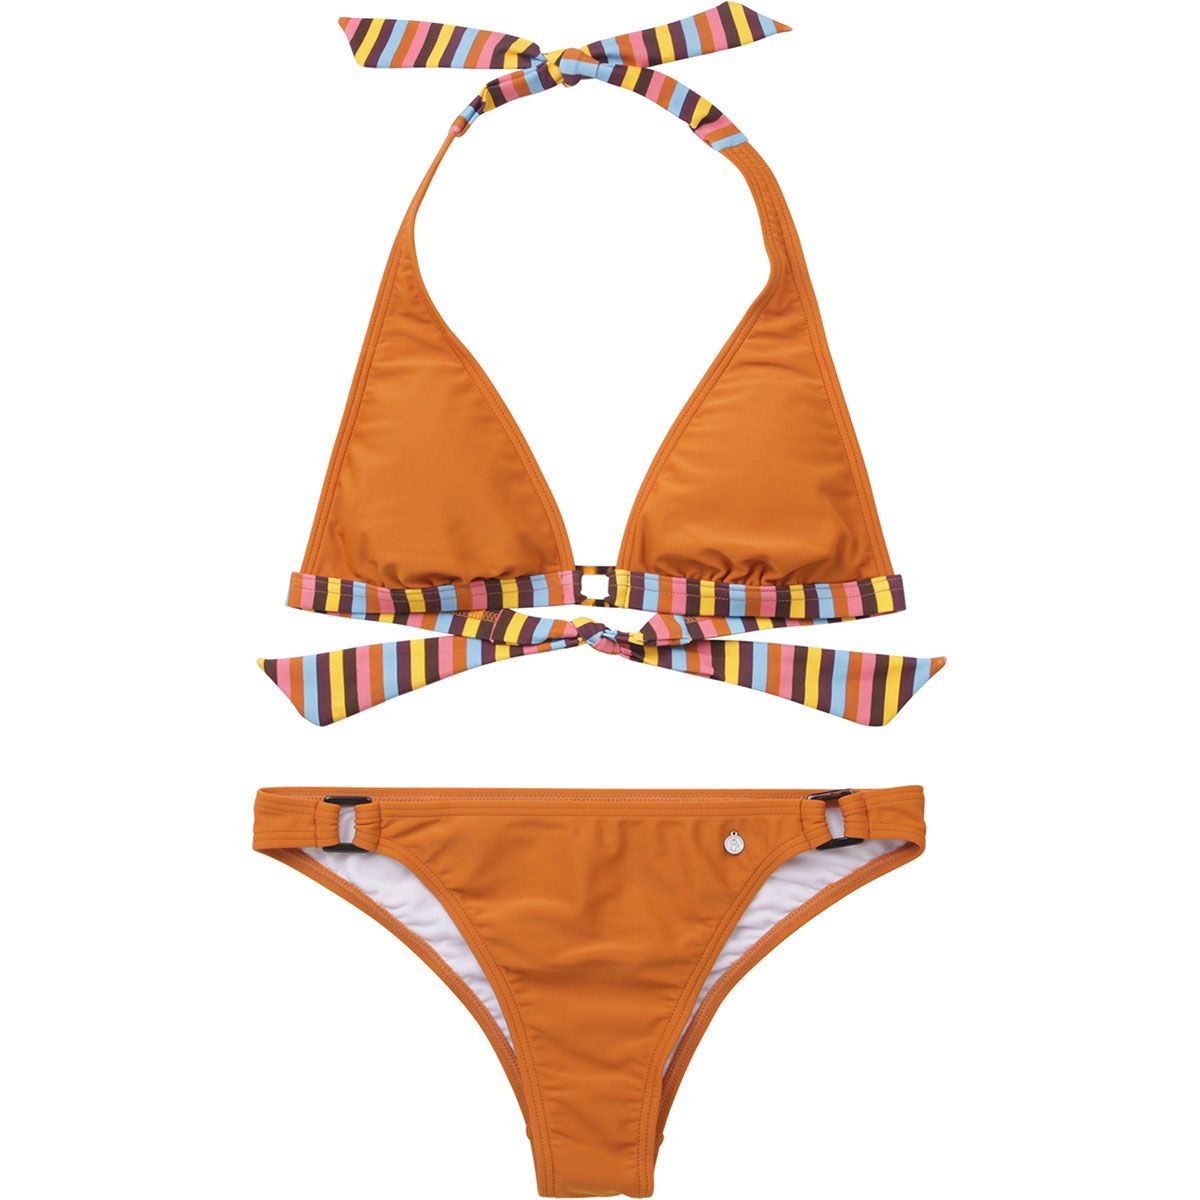 Image of Alprausch Damen Blatterwiese Bikini (Größe L, Orange)